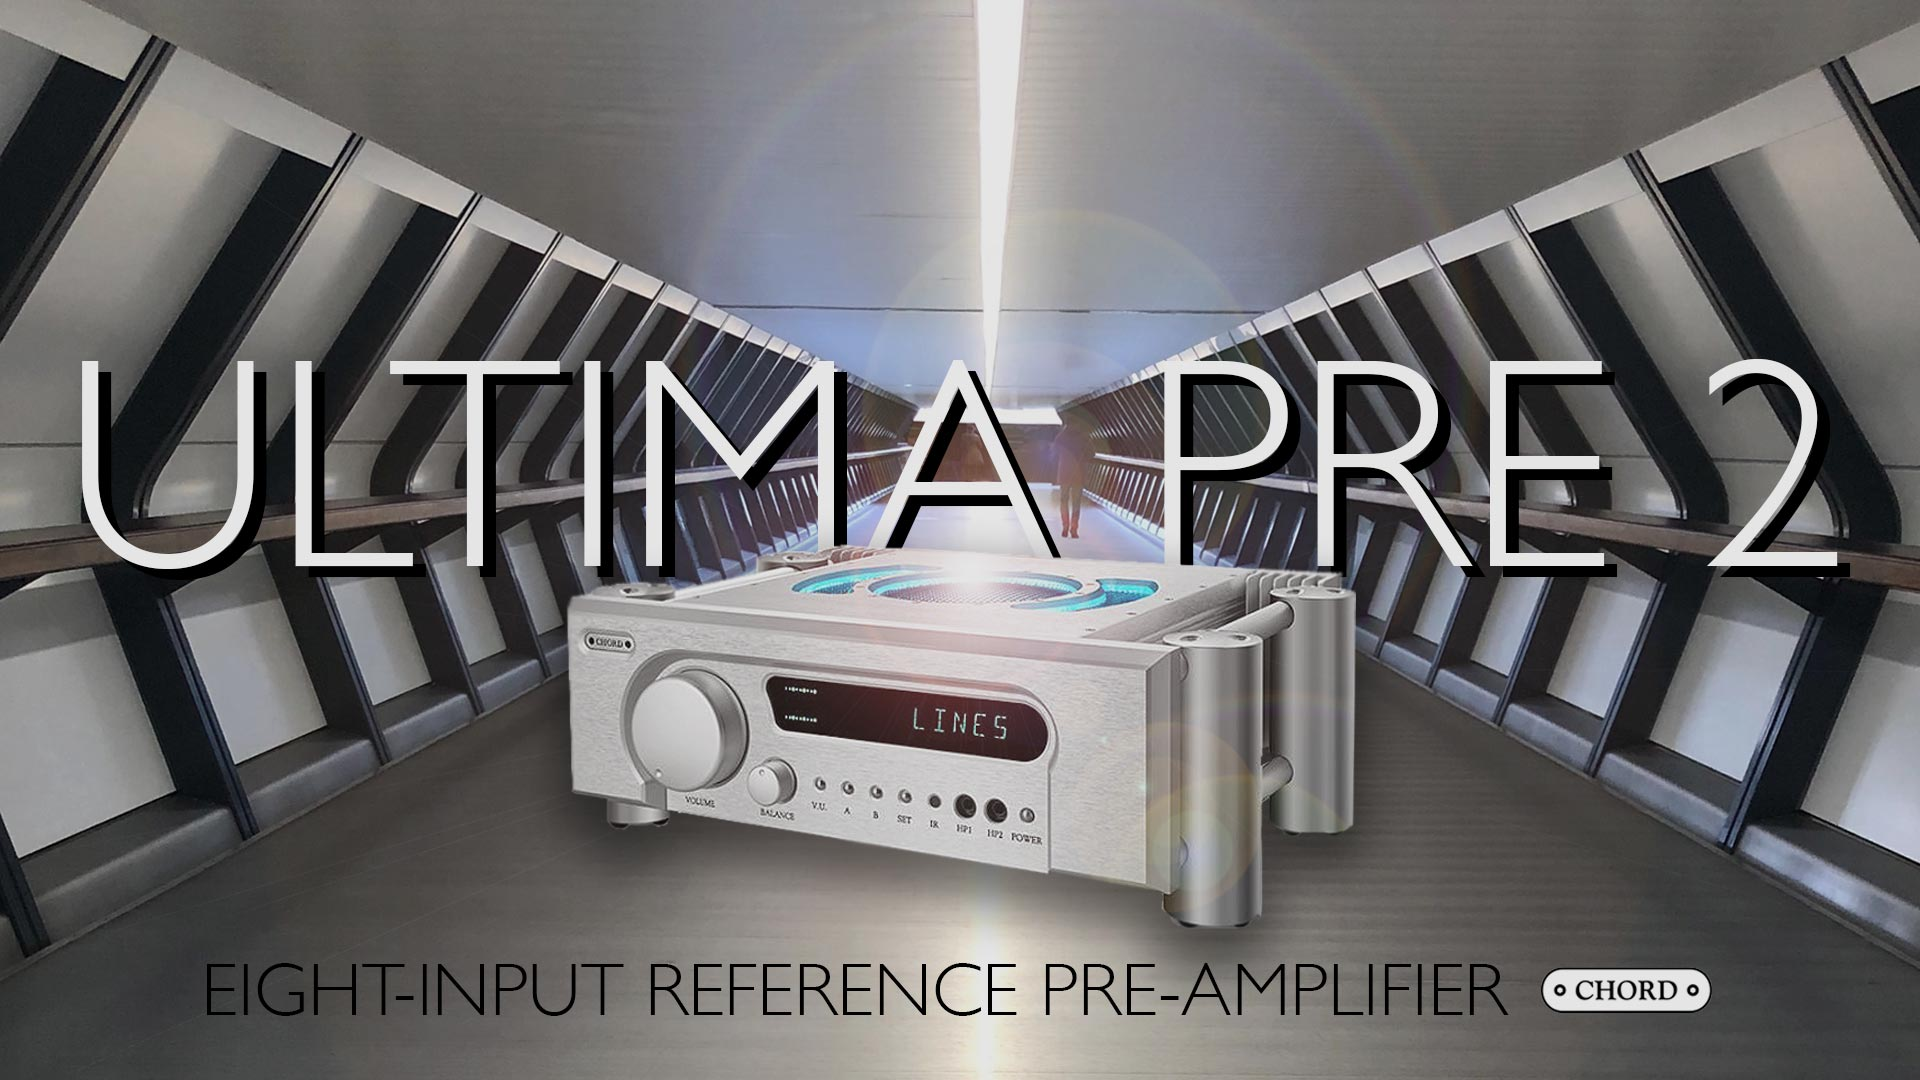 Chord Electronics Ultima Pre 2 Reference Preamplifier | Unilet Sound & Vision